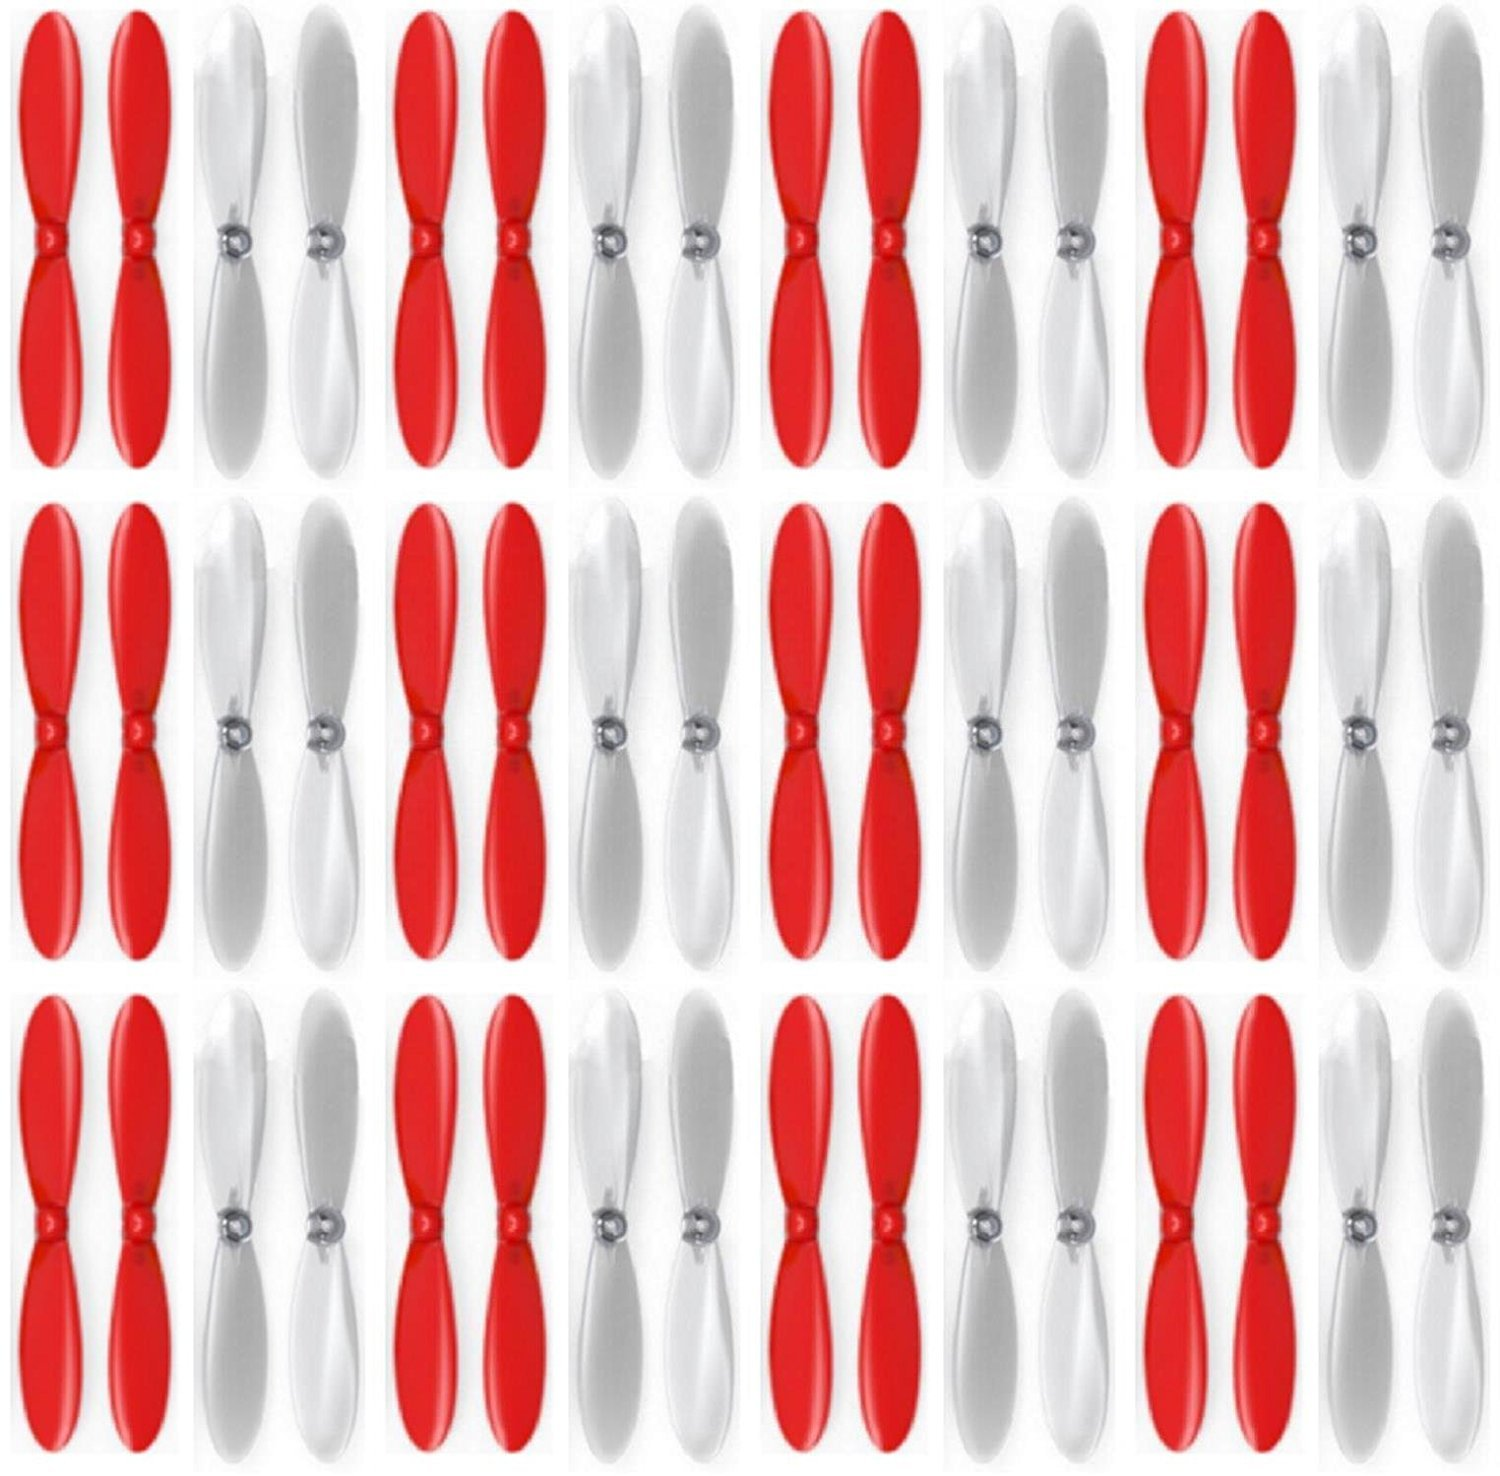 12 x Quantity of Estes Dart rosso Clear Propeller Blades Props Propellers Transparent - FAST FROM Orlando, Florida USA